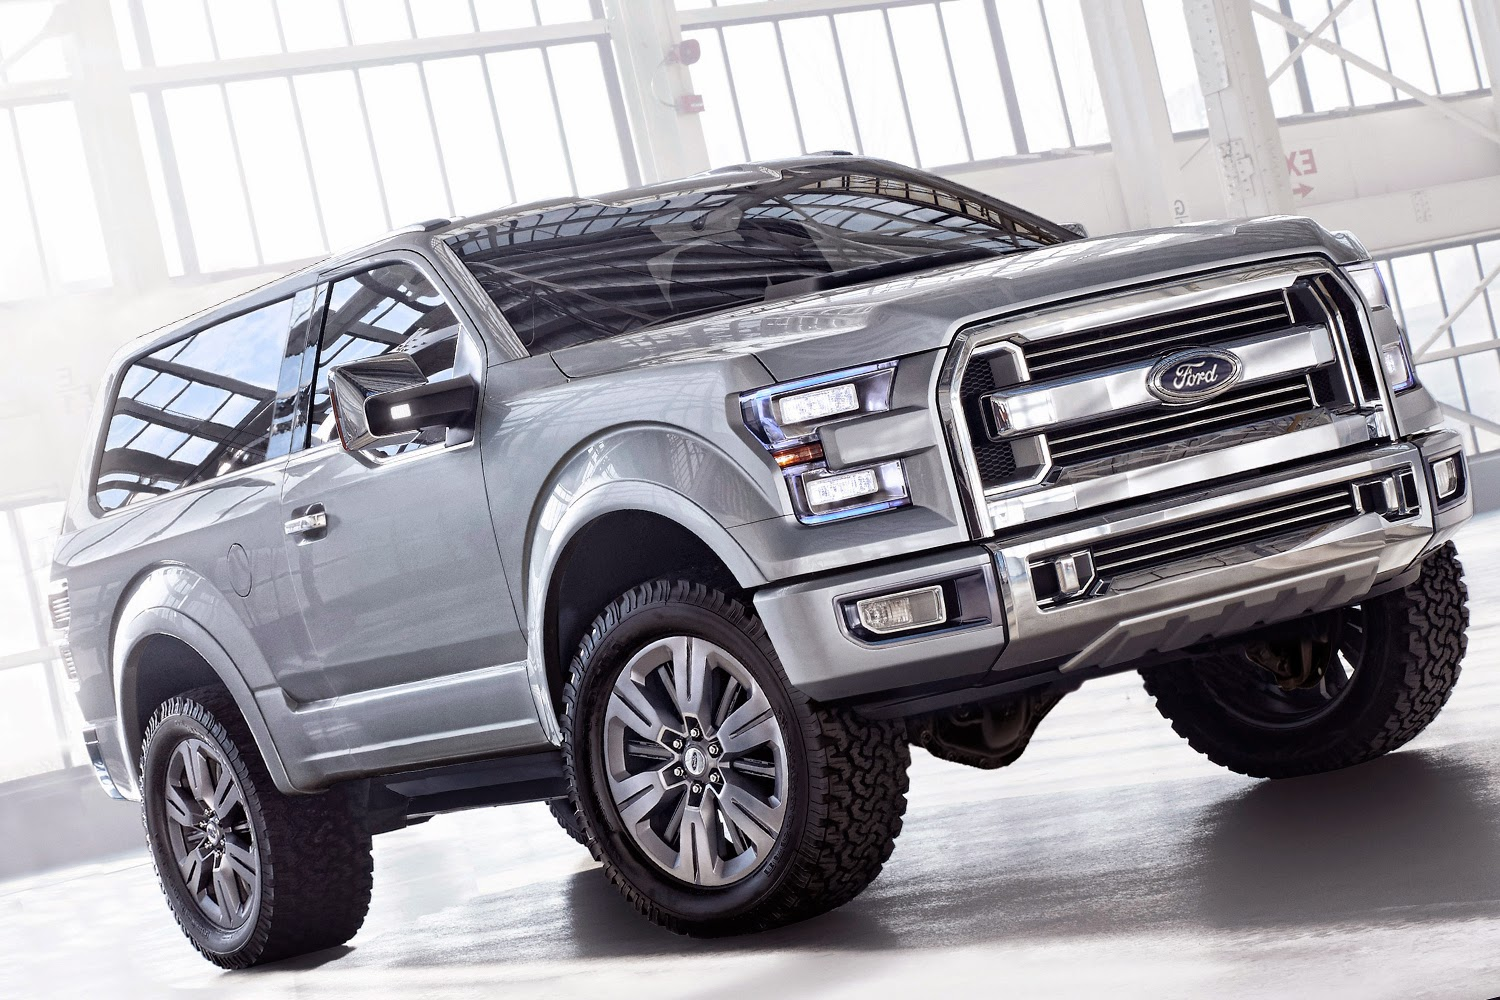 We Love Ford's, Past, Present And Future.: 2016 Ford Bronco SVT Raptor